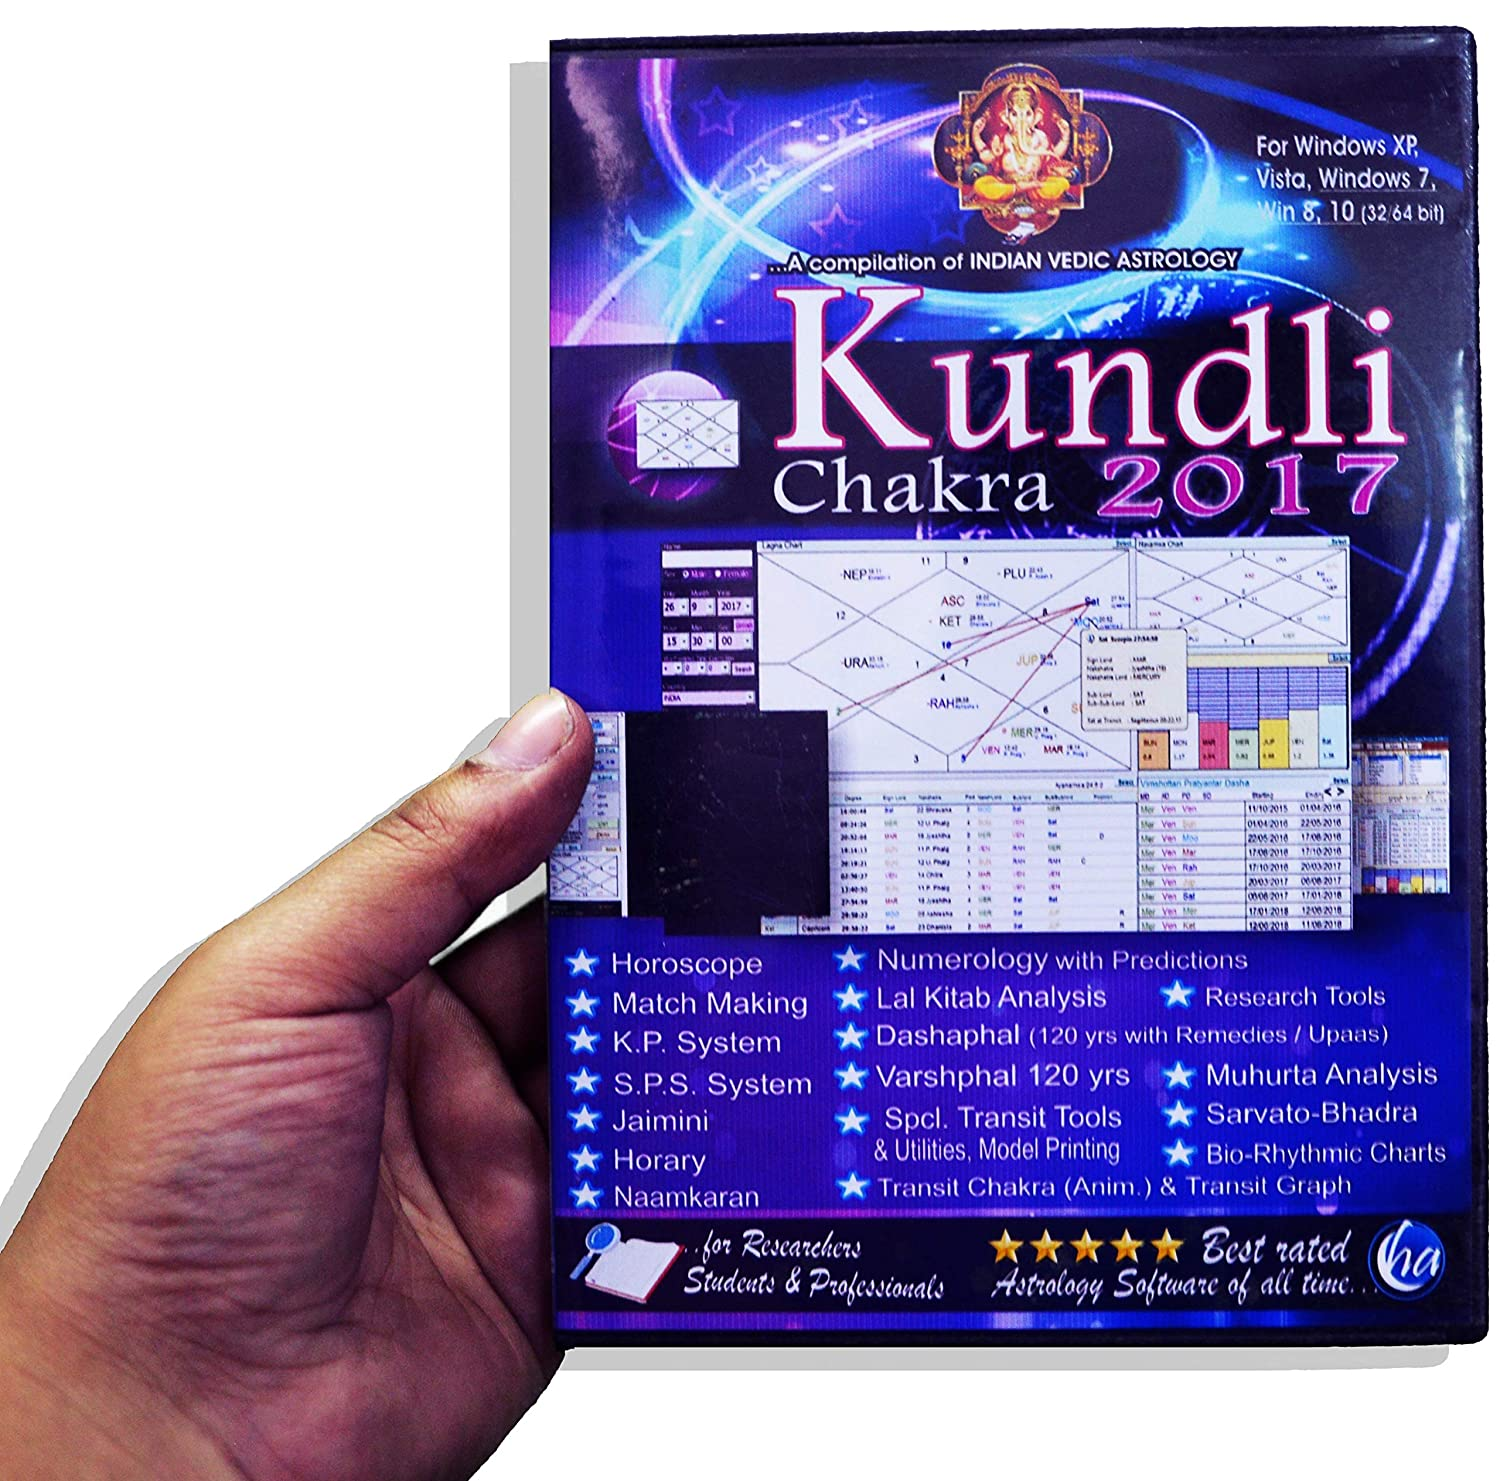 download kundli software for windows 8.1 in hindi